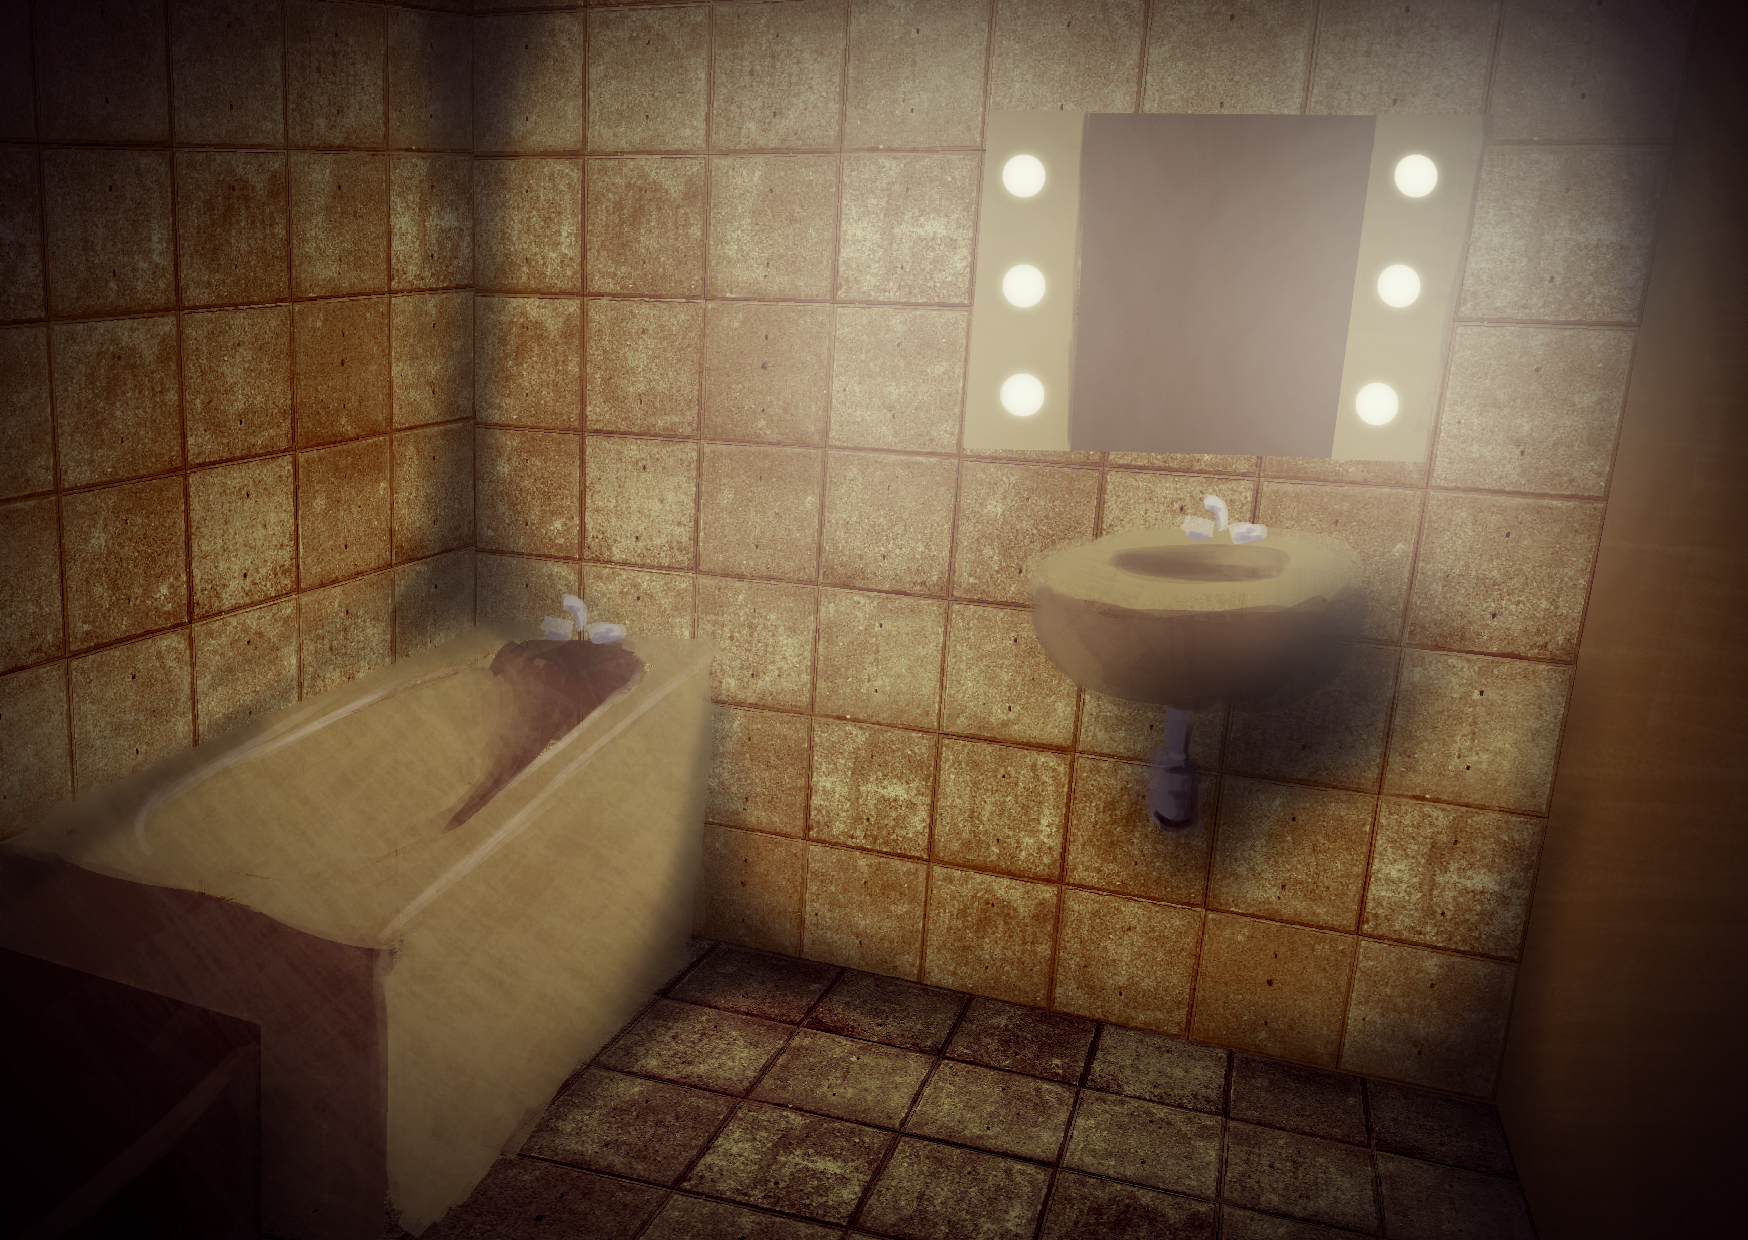 Interview l quipe d opaque hits playtime game side story - Salle de bain jaune ...